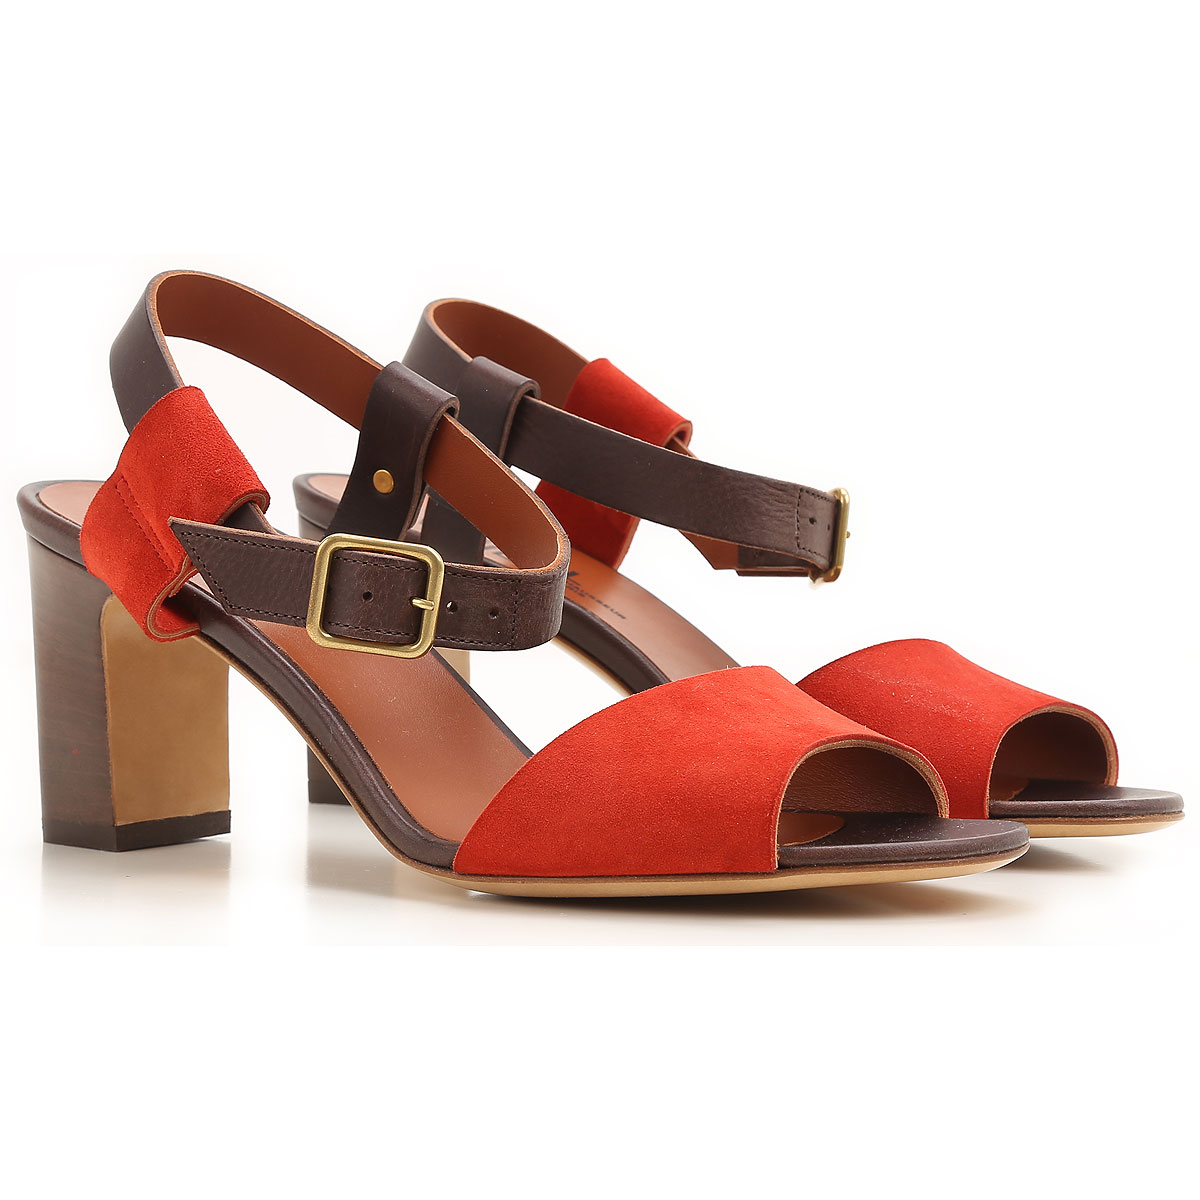 Michel Vivien Sandals for Women On Sale in Outlet, Red, Suede leather, 2019, 10 6 8 8.5